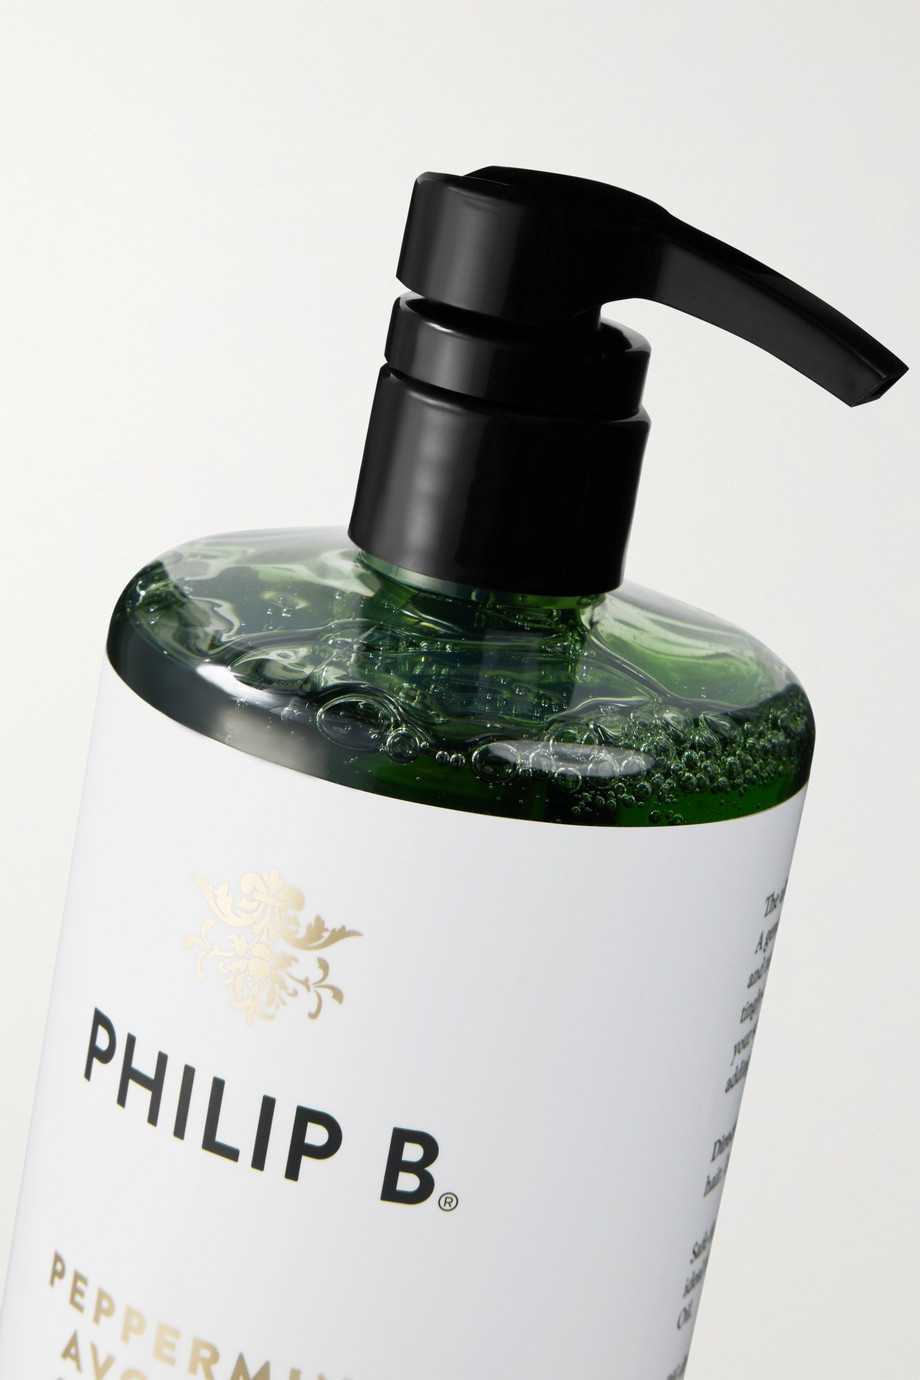 Philip B Peppermint Avocado Shampoo, 947ml